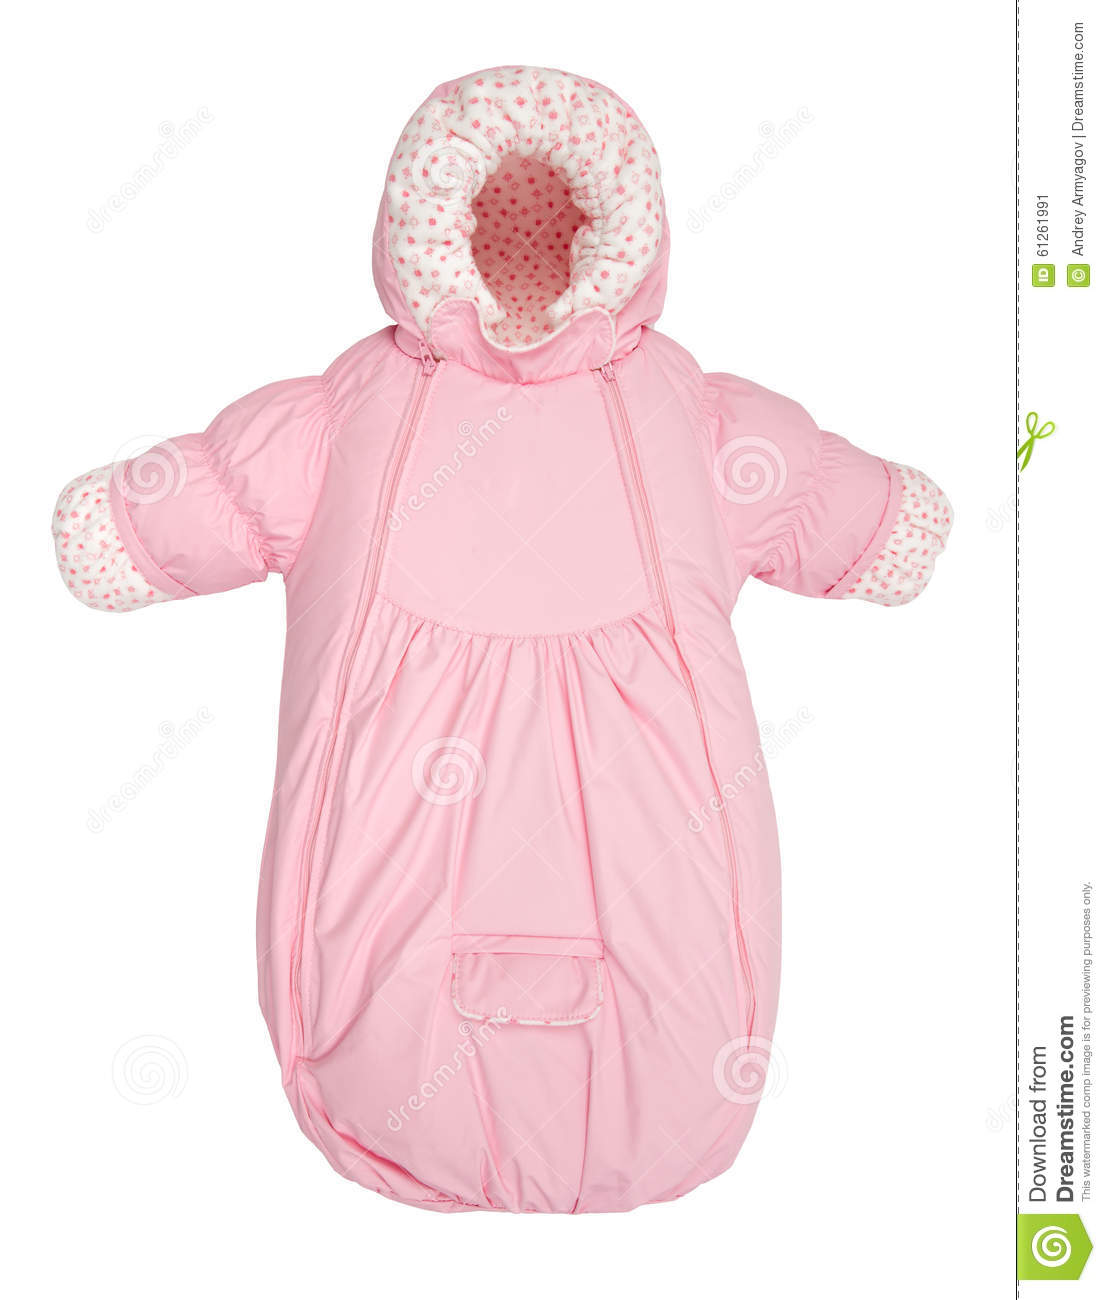 Cute, warm and soft, Columbia Sportswear simplifies taking your baby into the cold. Free shipping for our members. Menu Backpacks & Bags Coolers Duffels & Rollers Tents Water Bottles View All Sale Menu Jackets Baby Snowsuits 10 products Refine Results. Sort by. Featured. Most Popular. Newest.